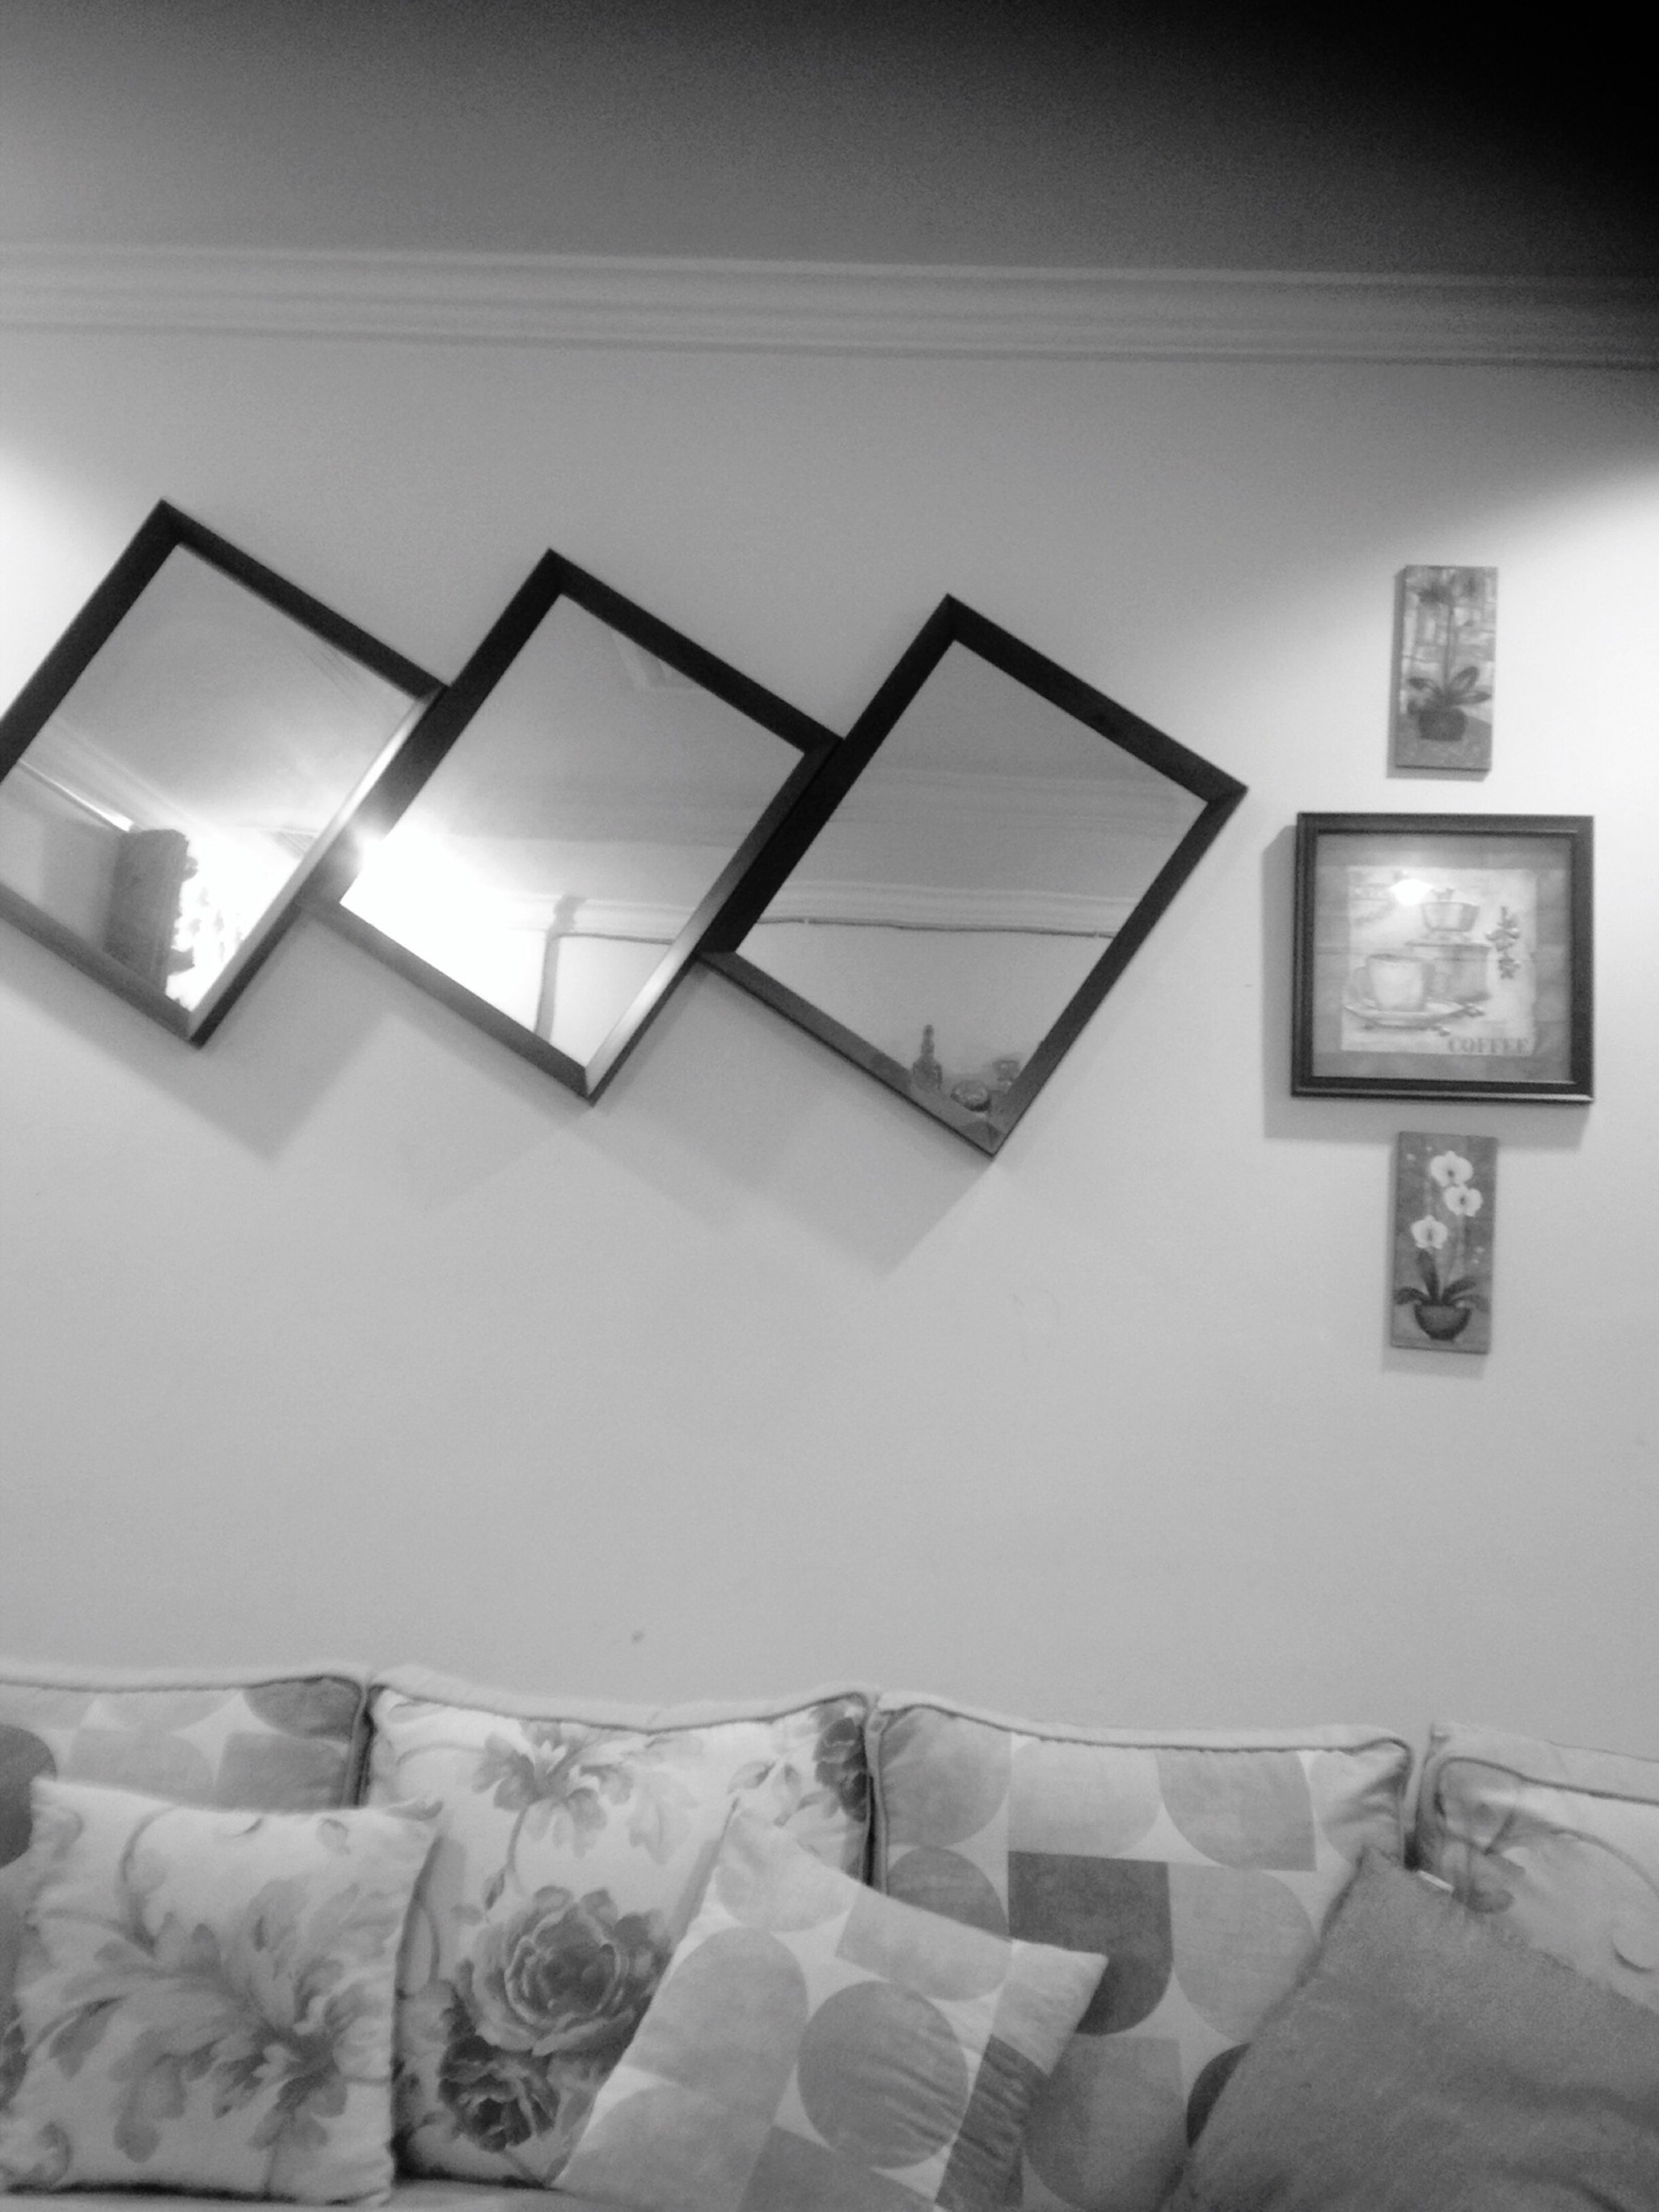 indoors, wall - building feature, wall, communication, absence, architecture, built structure, home interior, text, no people, chair, empty, technology, white color, in a row, picture frame, tile, house, sofa, day